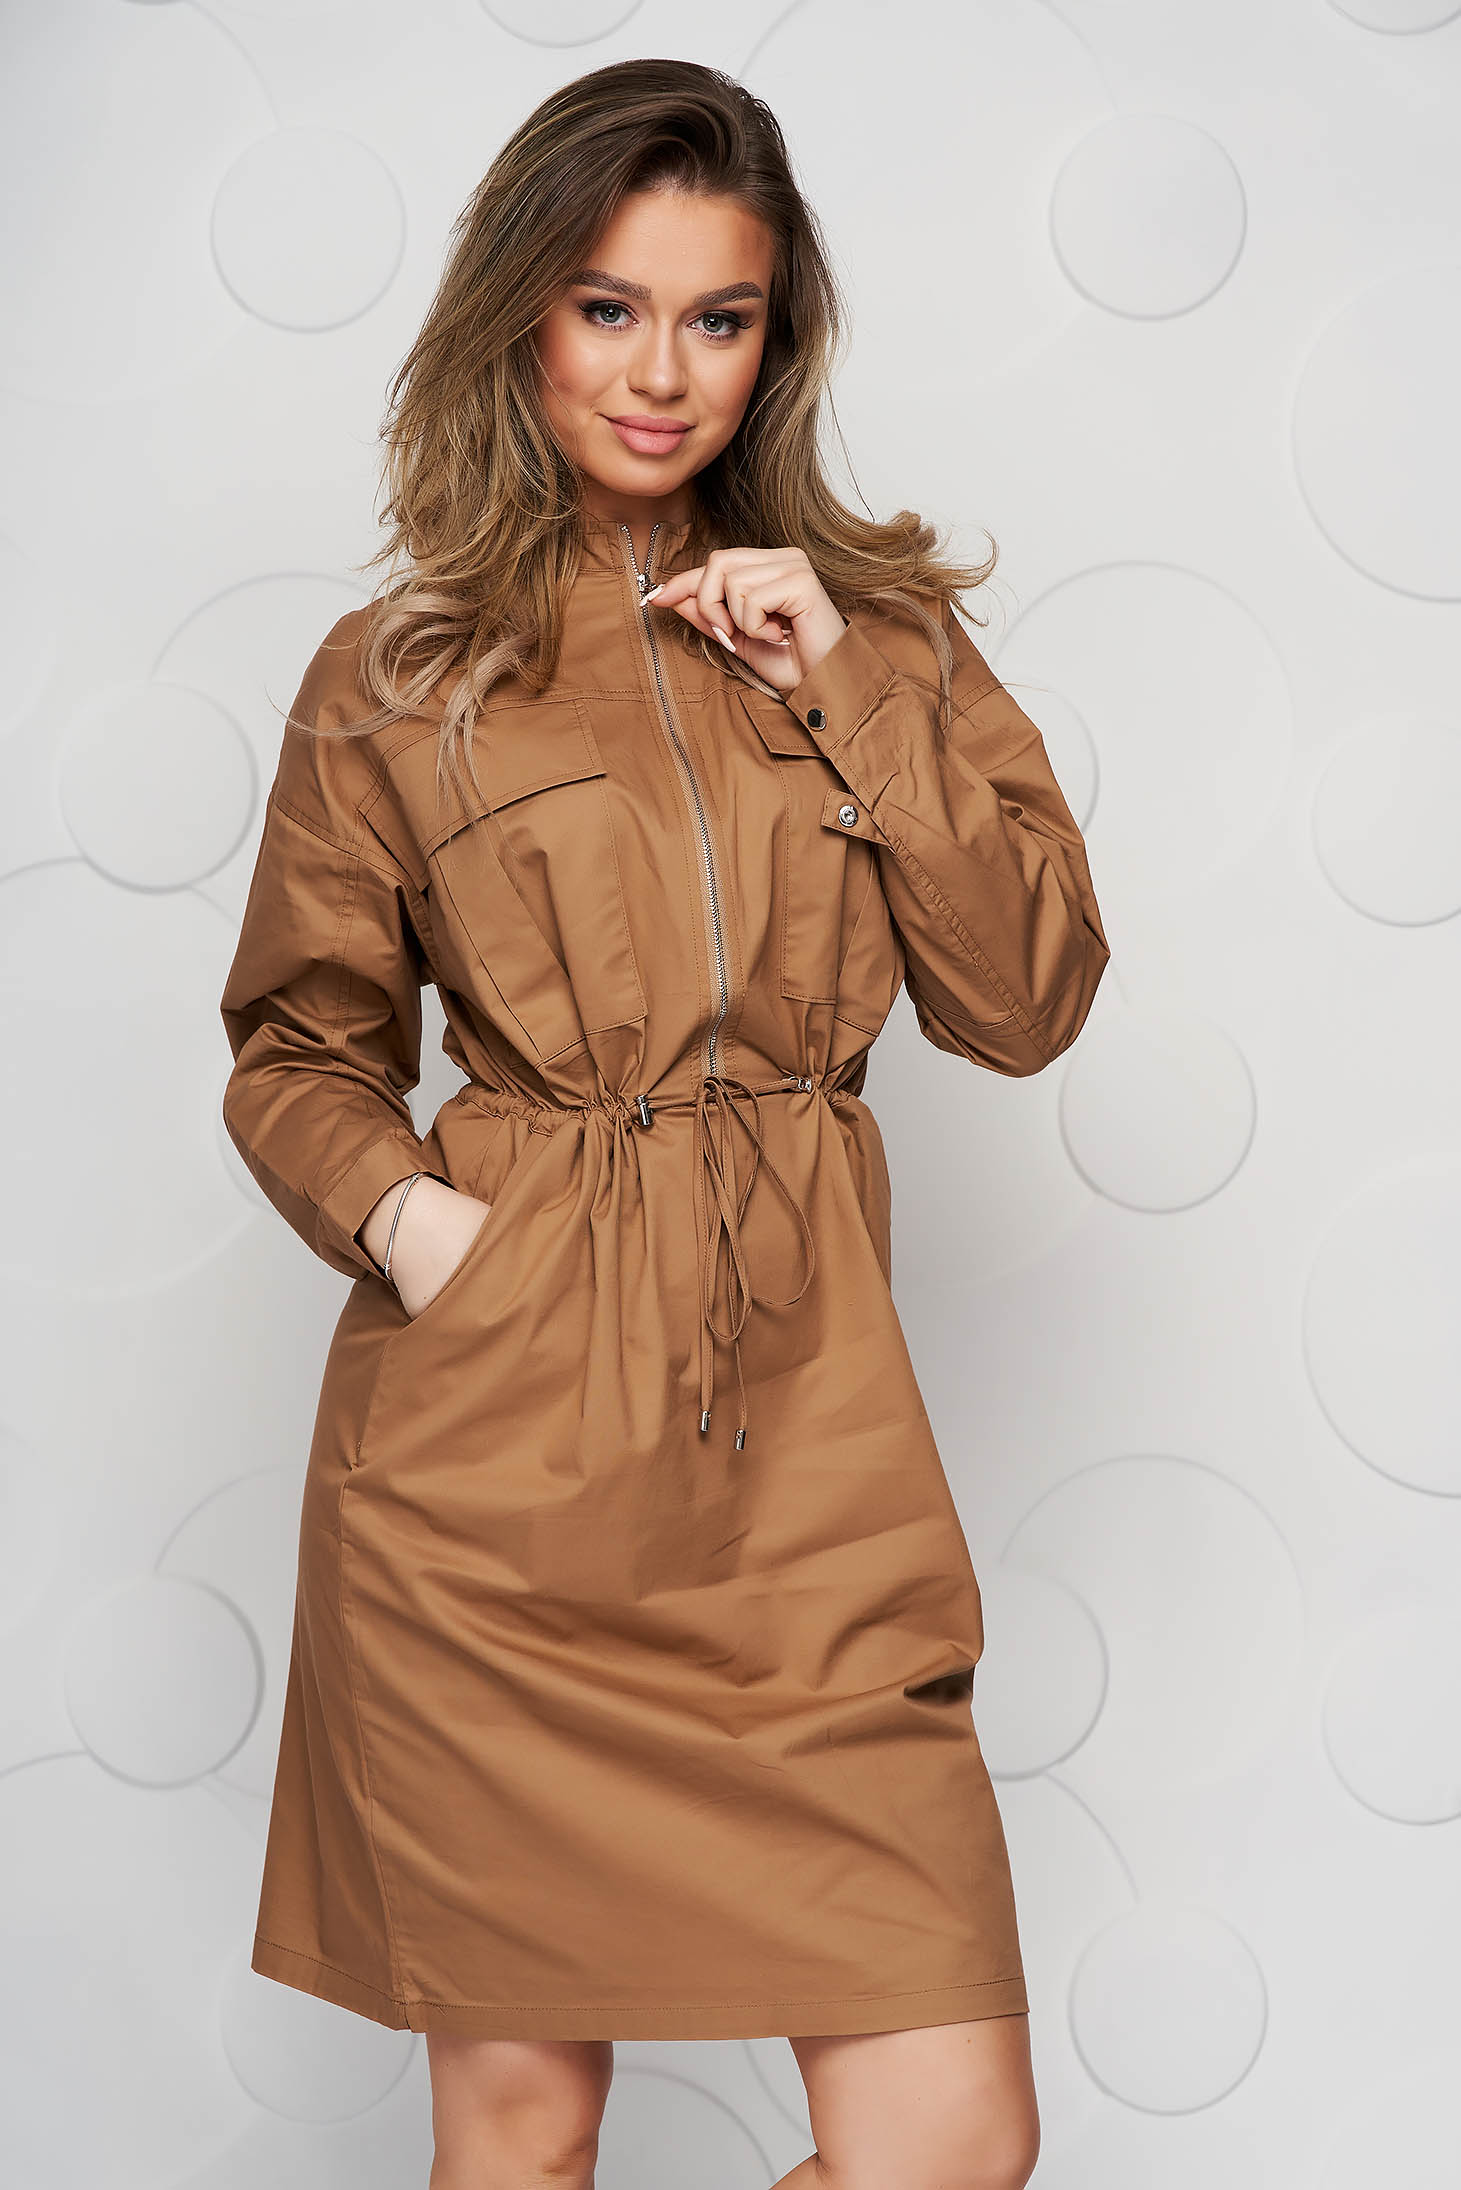 Lightbrown dress short cut straight long sleeved is fastened around the waist with a ribbon